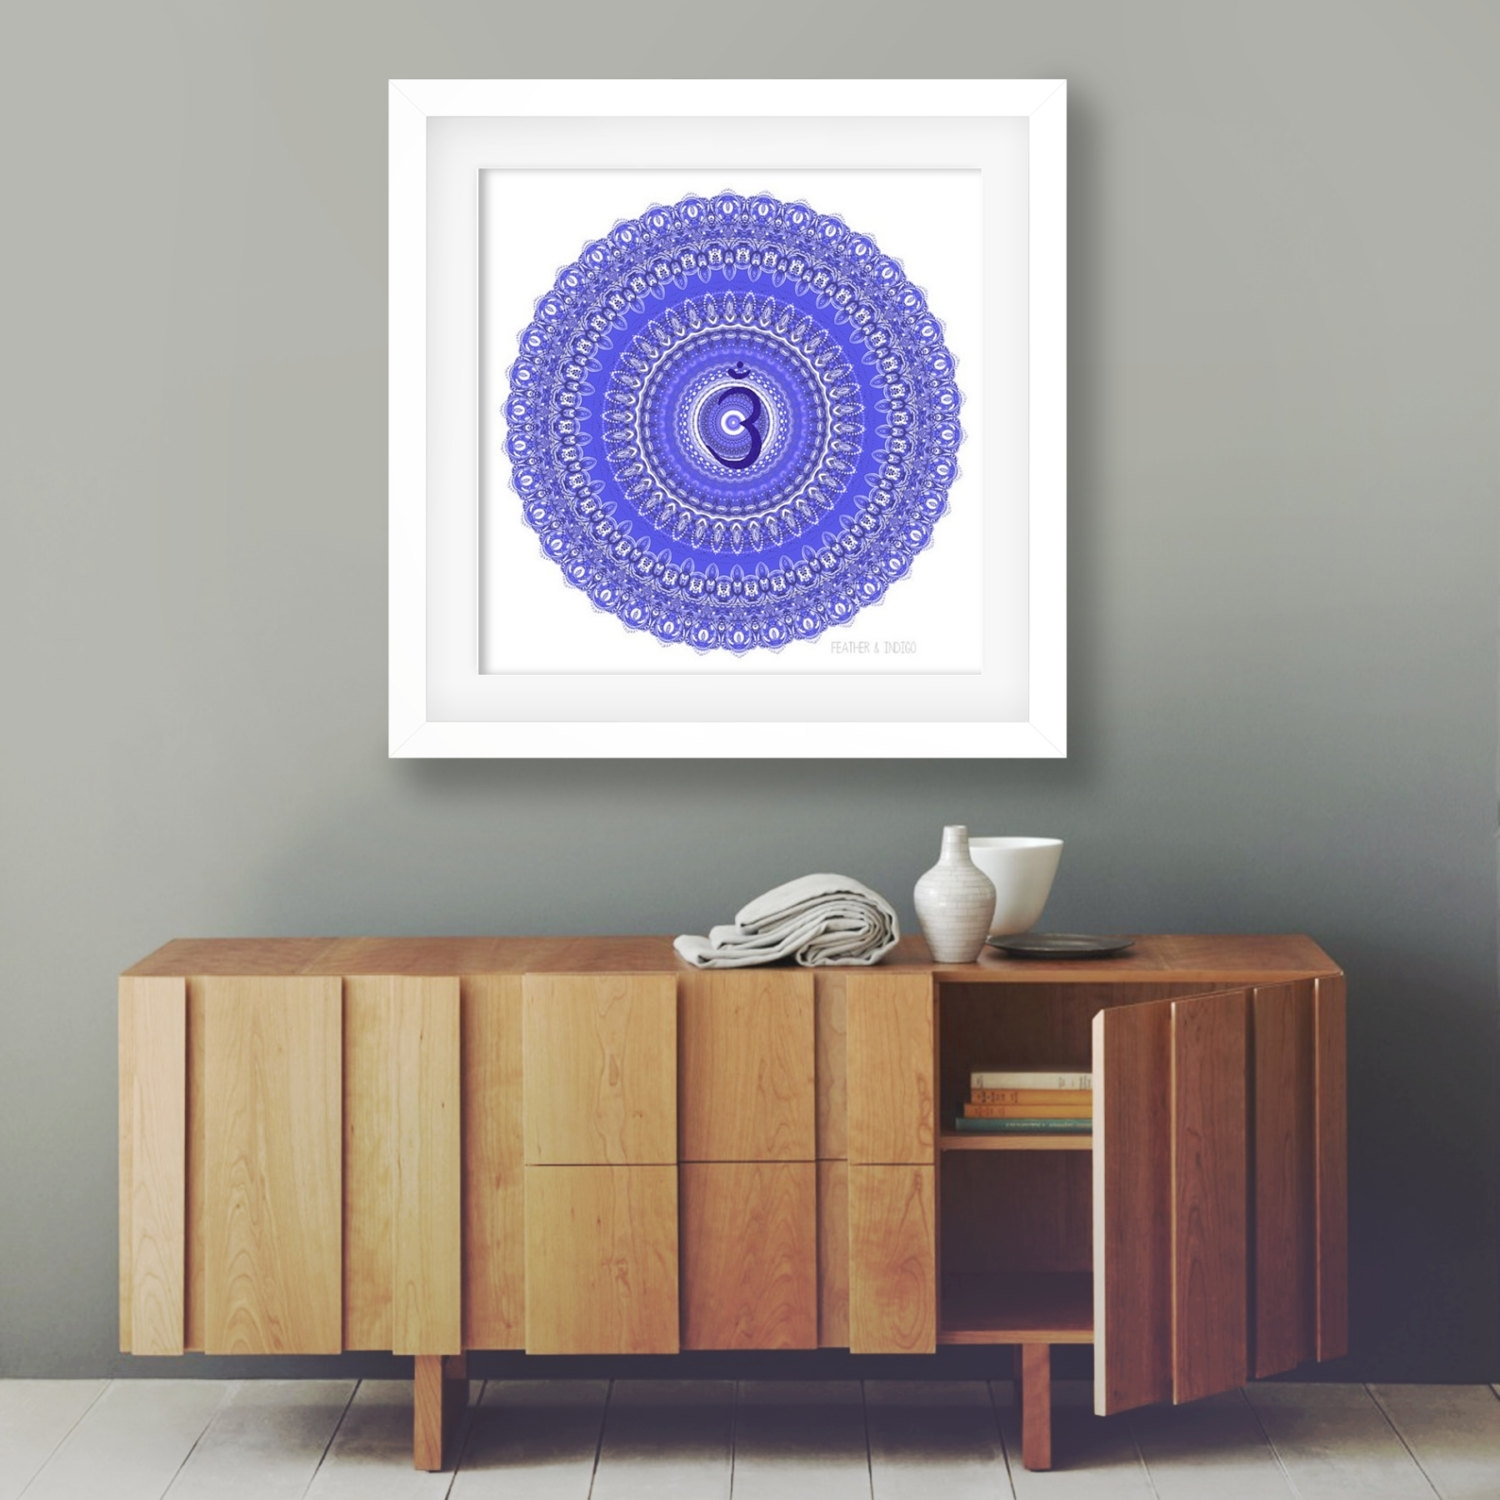 Popular Items For Mandala Wall Decor On Etsy Third Eye Chakra Art Pertaining To Most Current Etsy Wall Accents (Gallery 7 of 15)